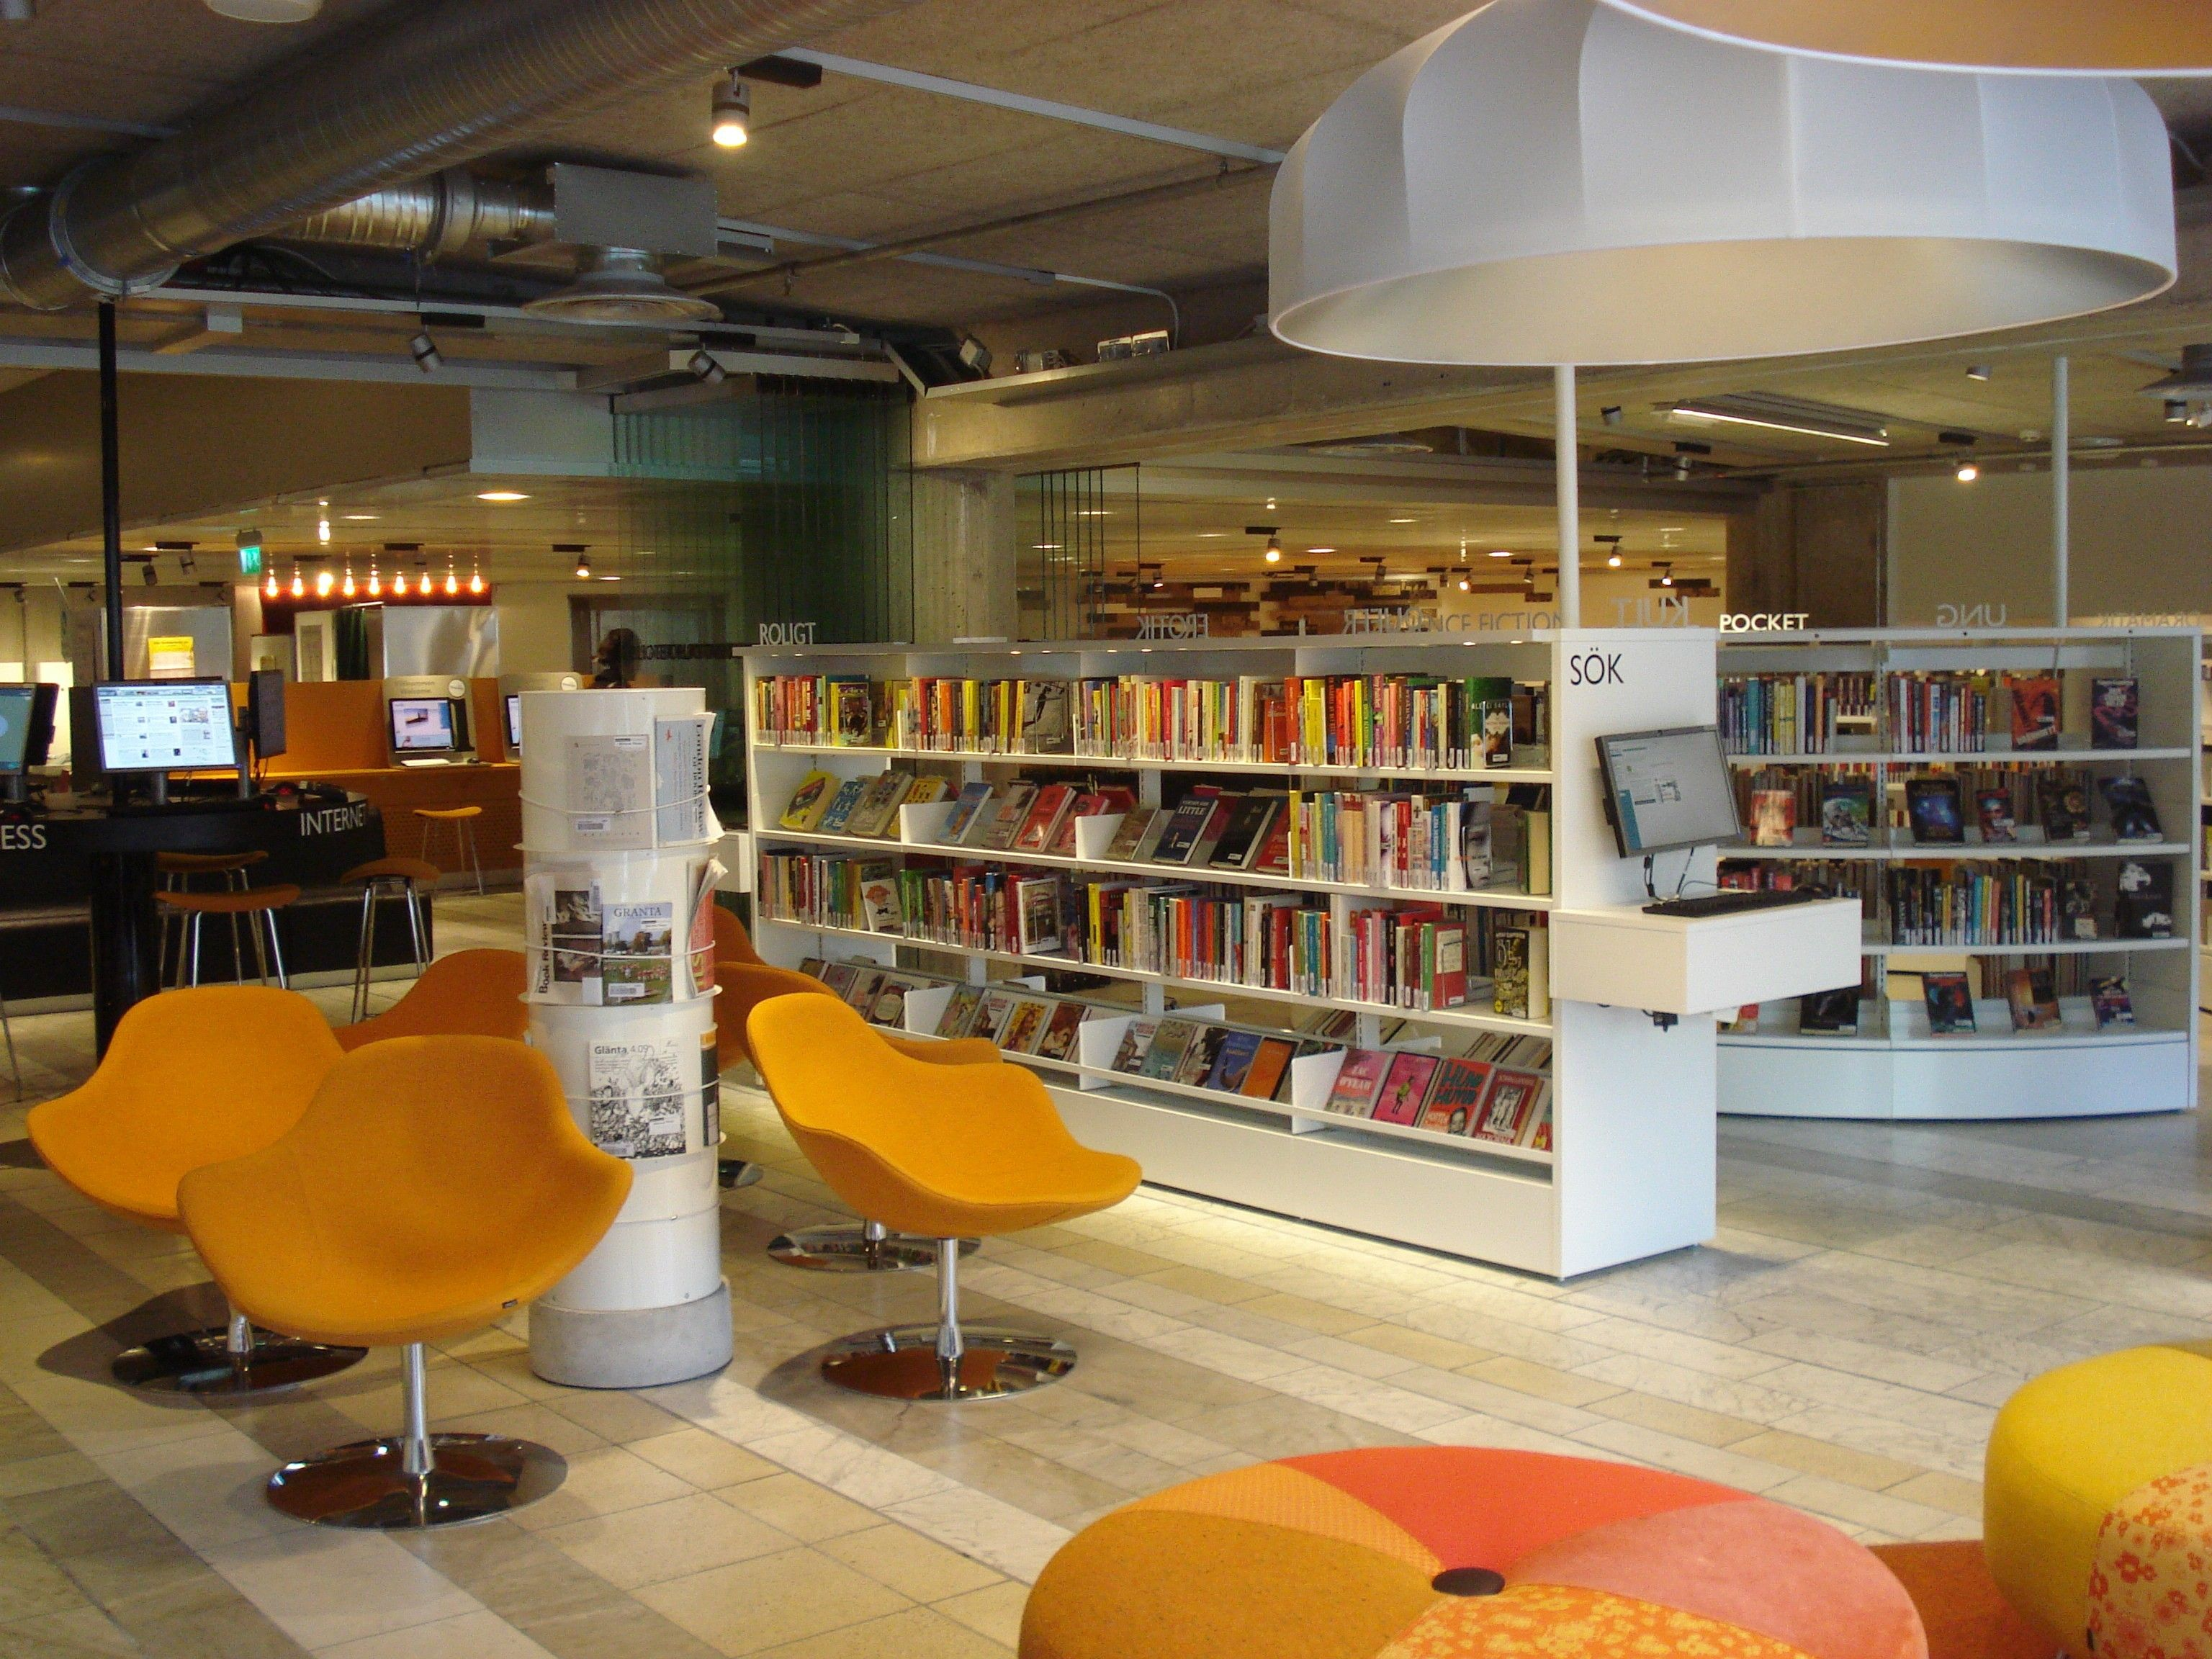 The Stockholm Cultural House in Sweden | Book Club | Pinterest ...